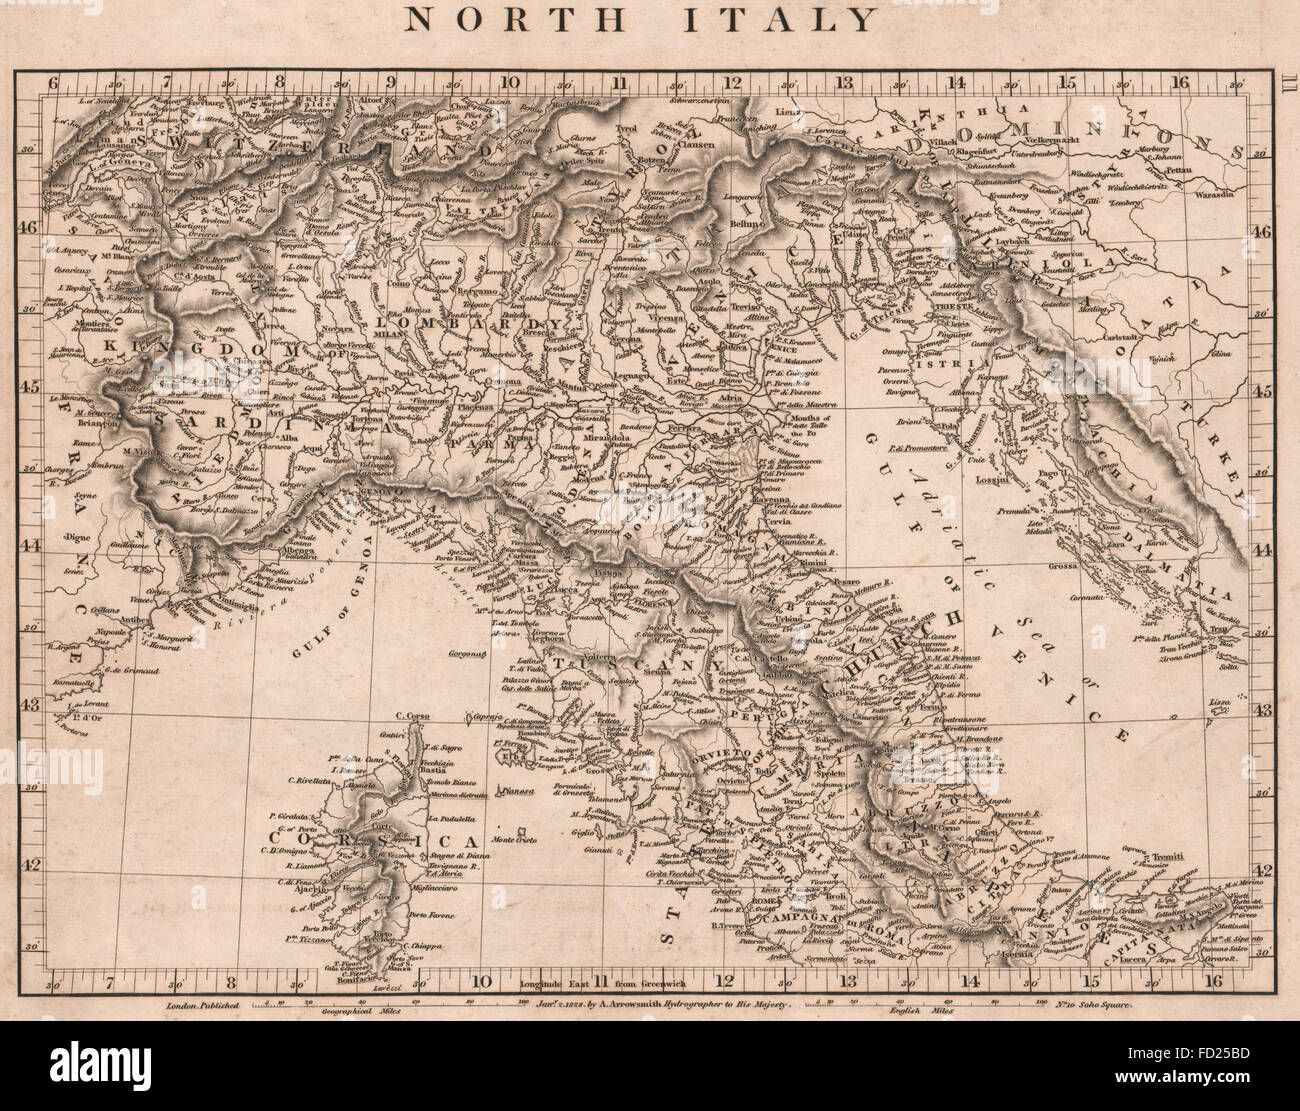 Map Northern Italy Stock Photos & Map Northern Italy Stock Images ...